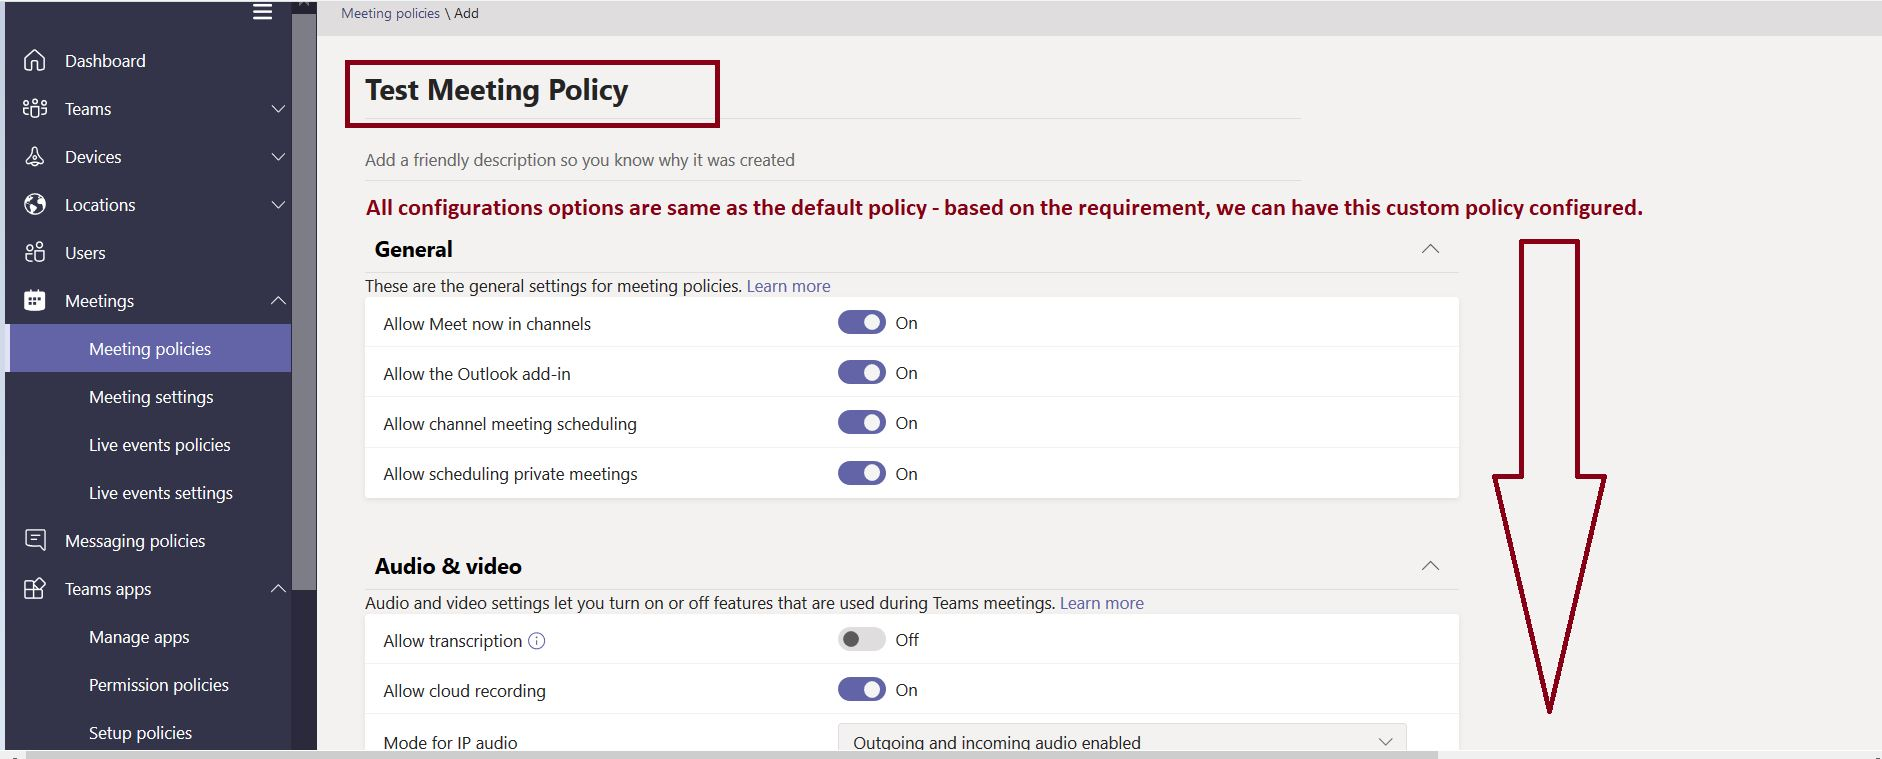 How to add a new meeting policy in Microsoft Teams